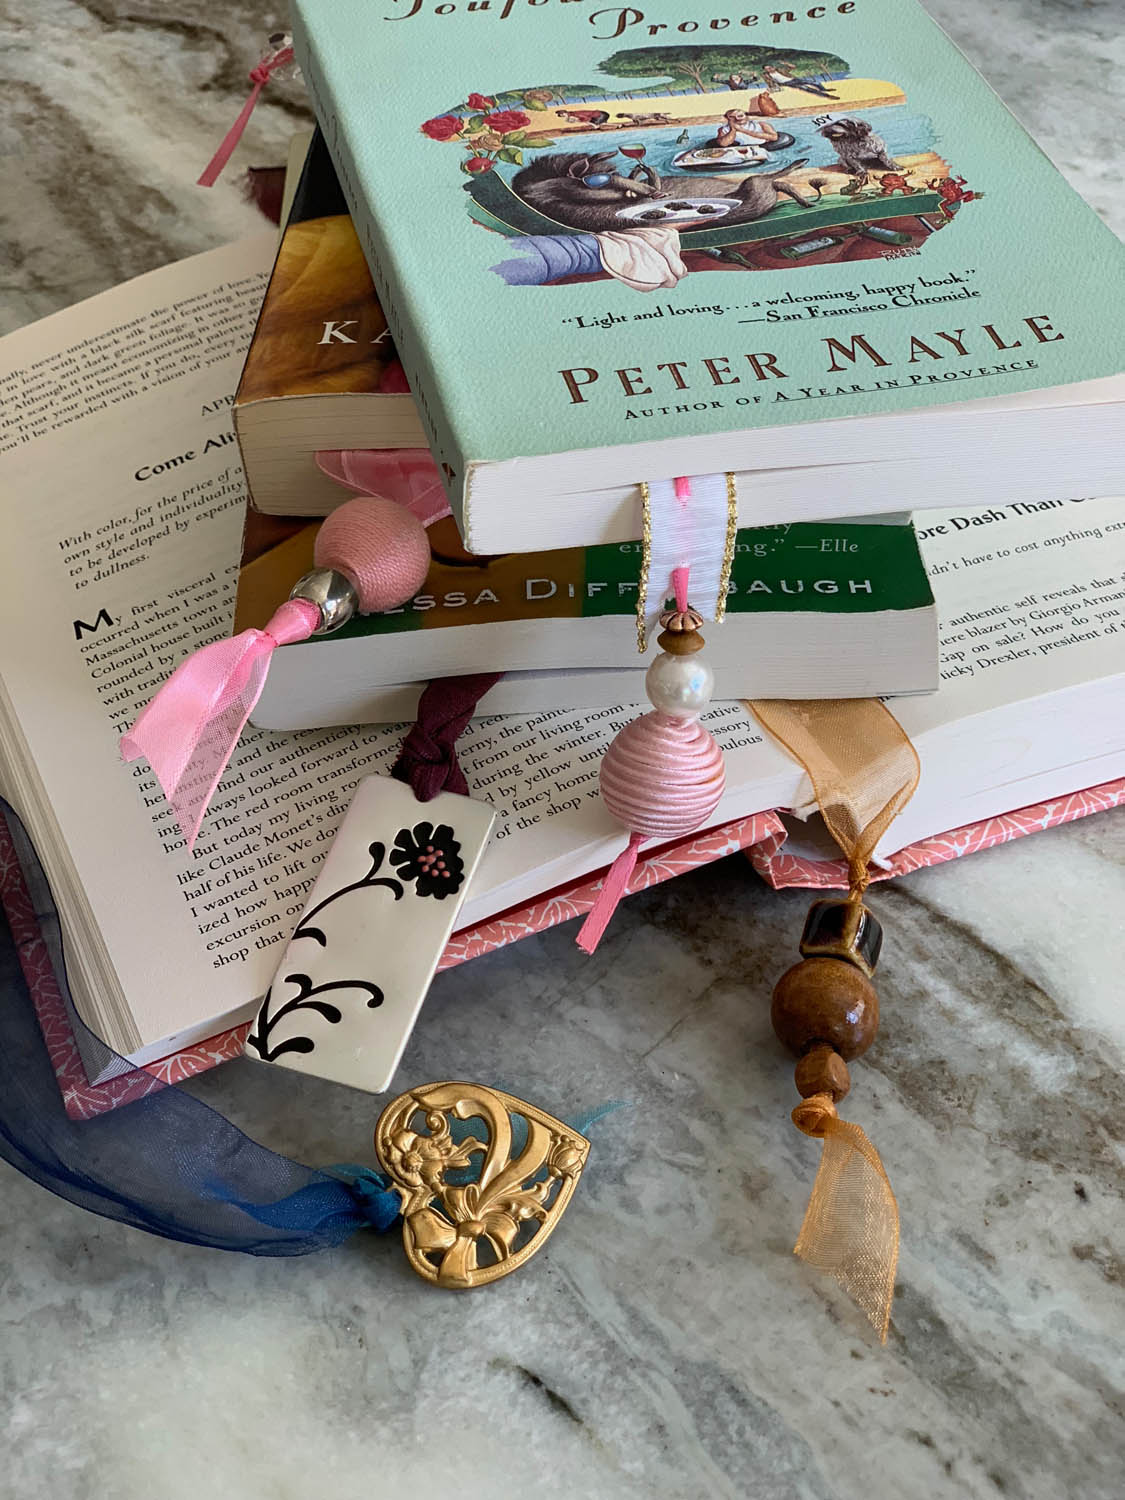 Finished ribbon bookmarks with charms in assorted books.